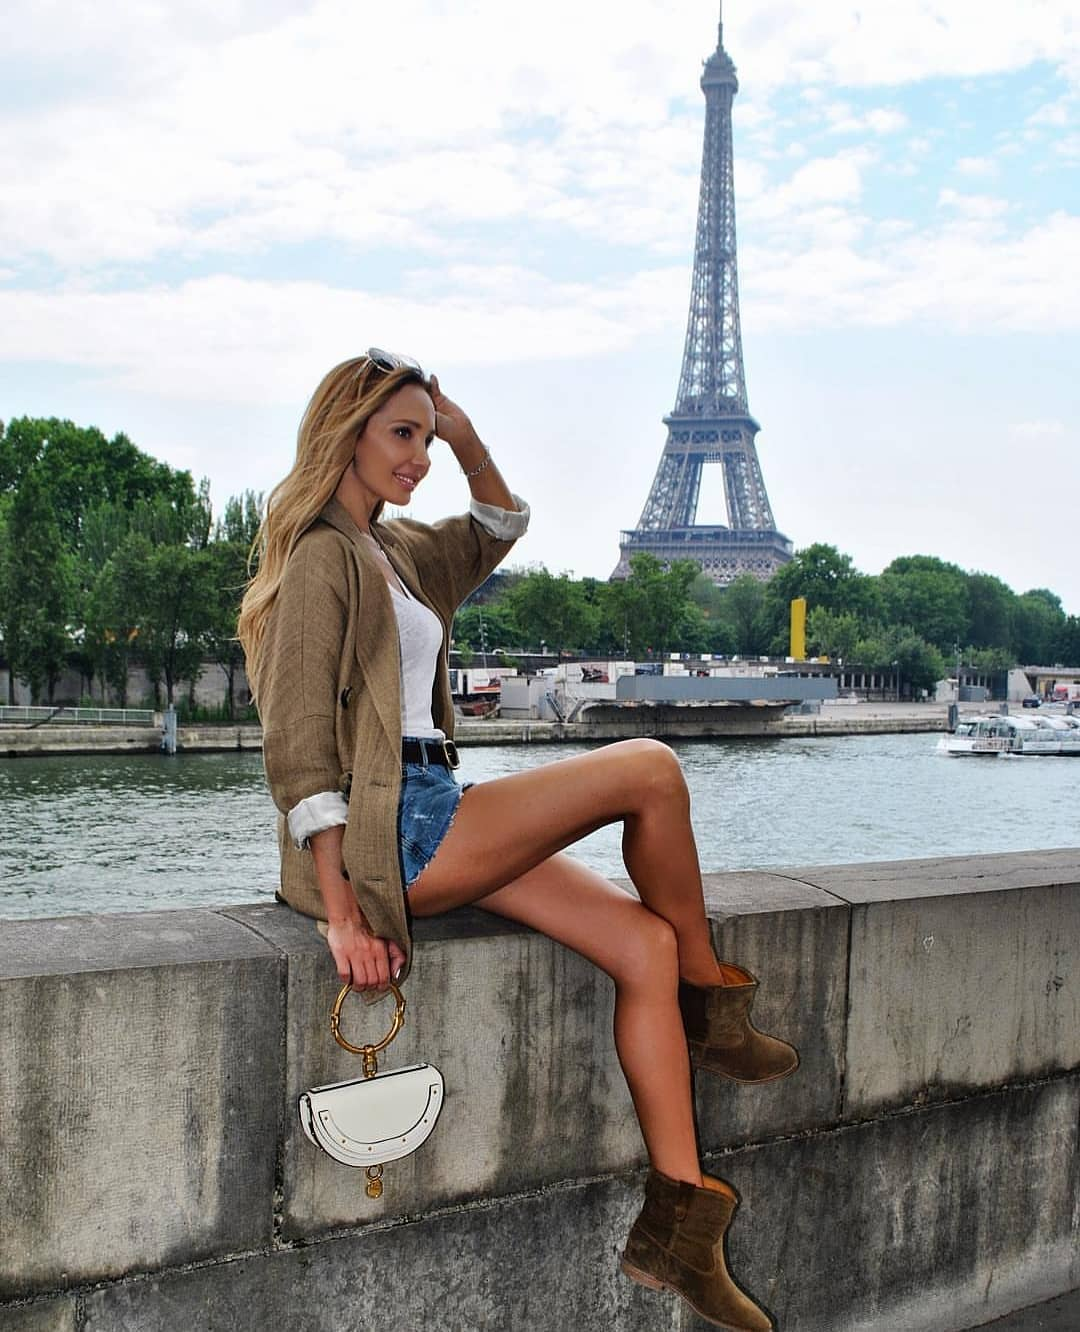 Beige-Brown Blazer With Blue Denim Shorts And Ankle Boots For Spring In Paris 2019